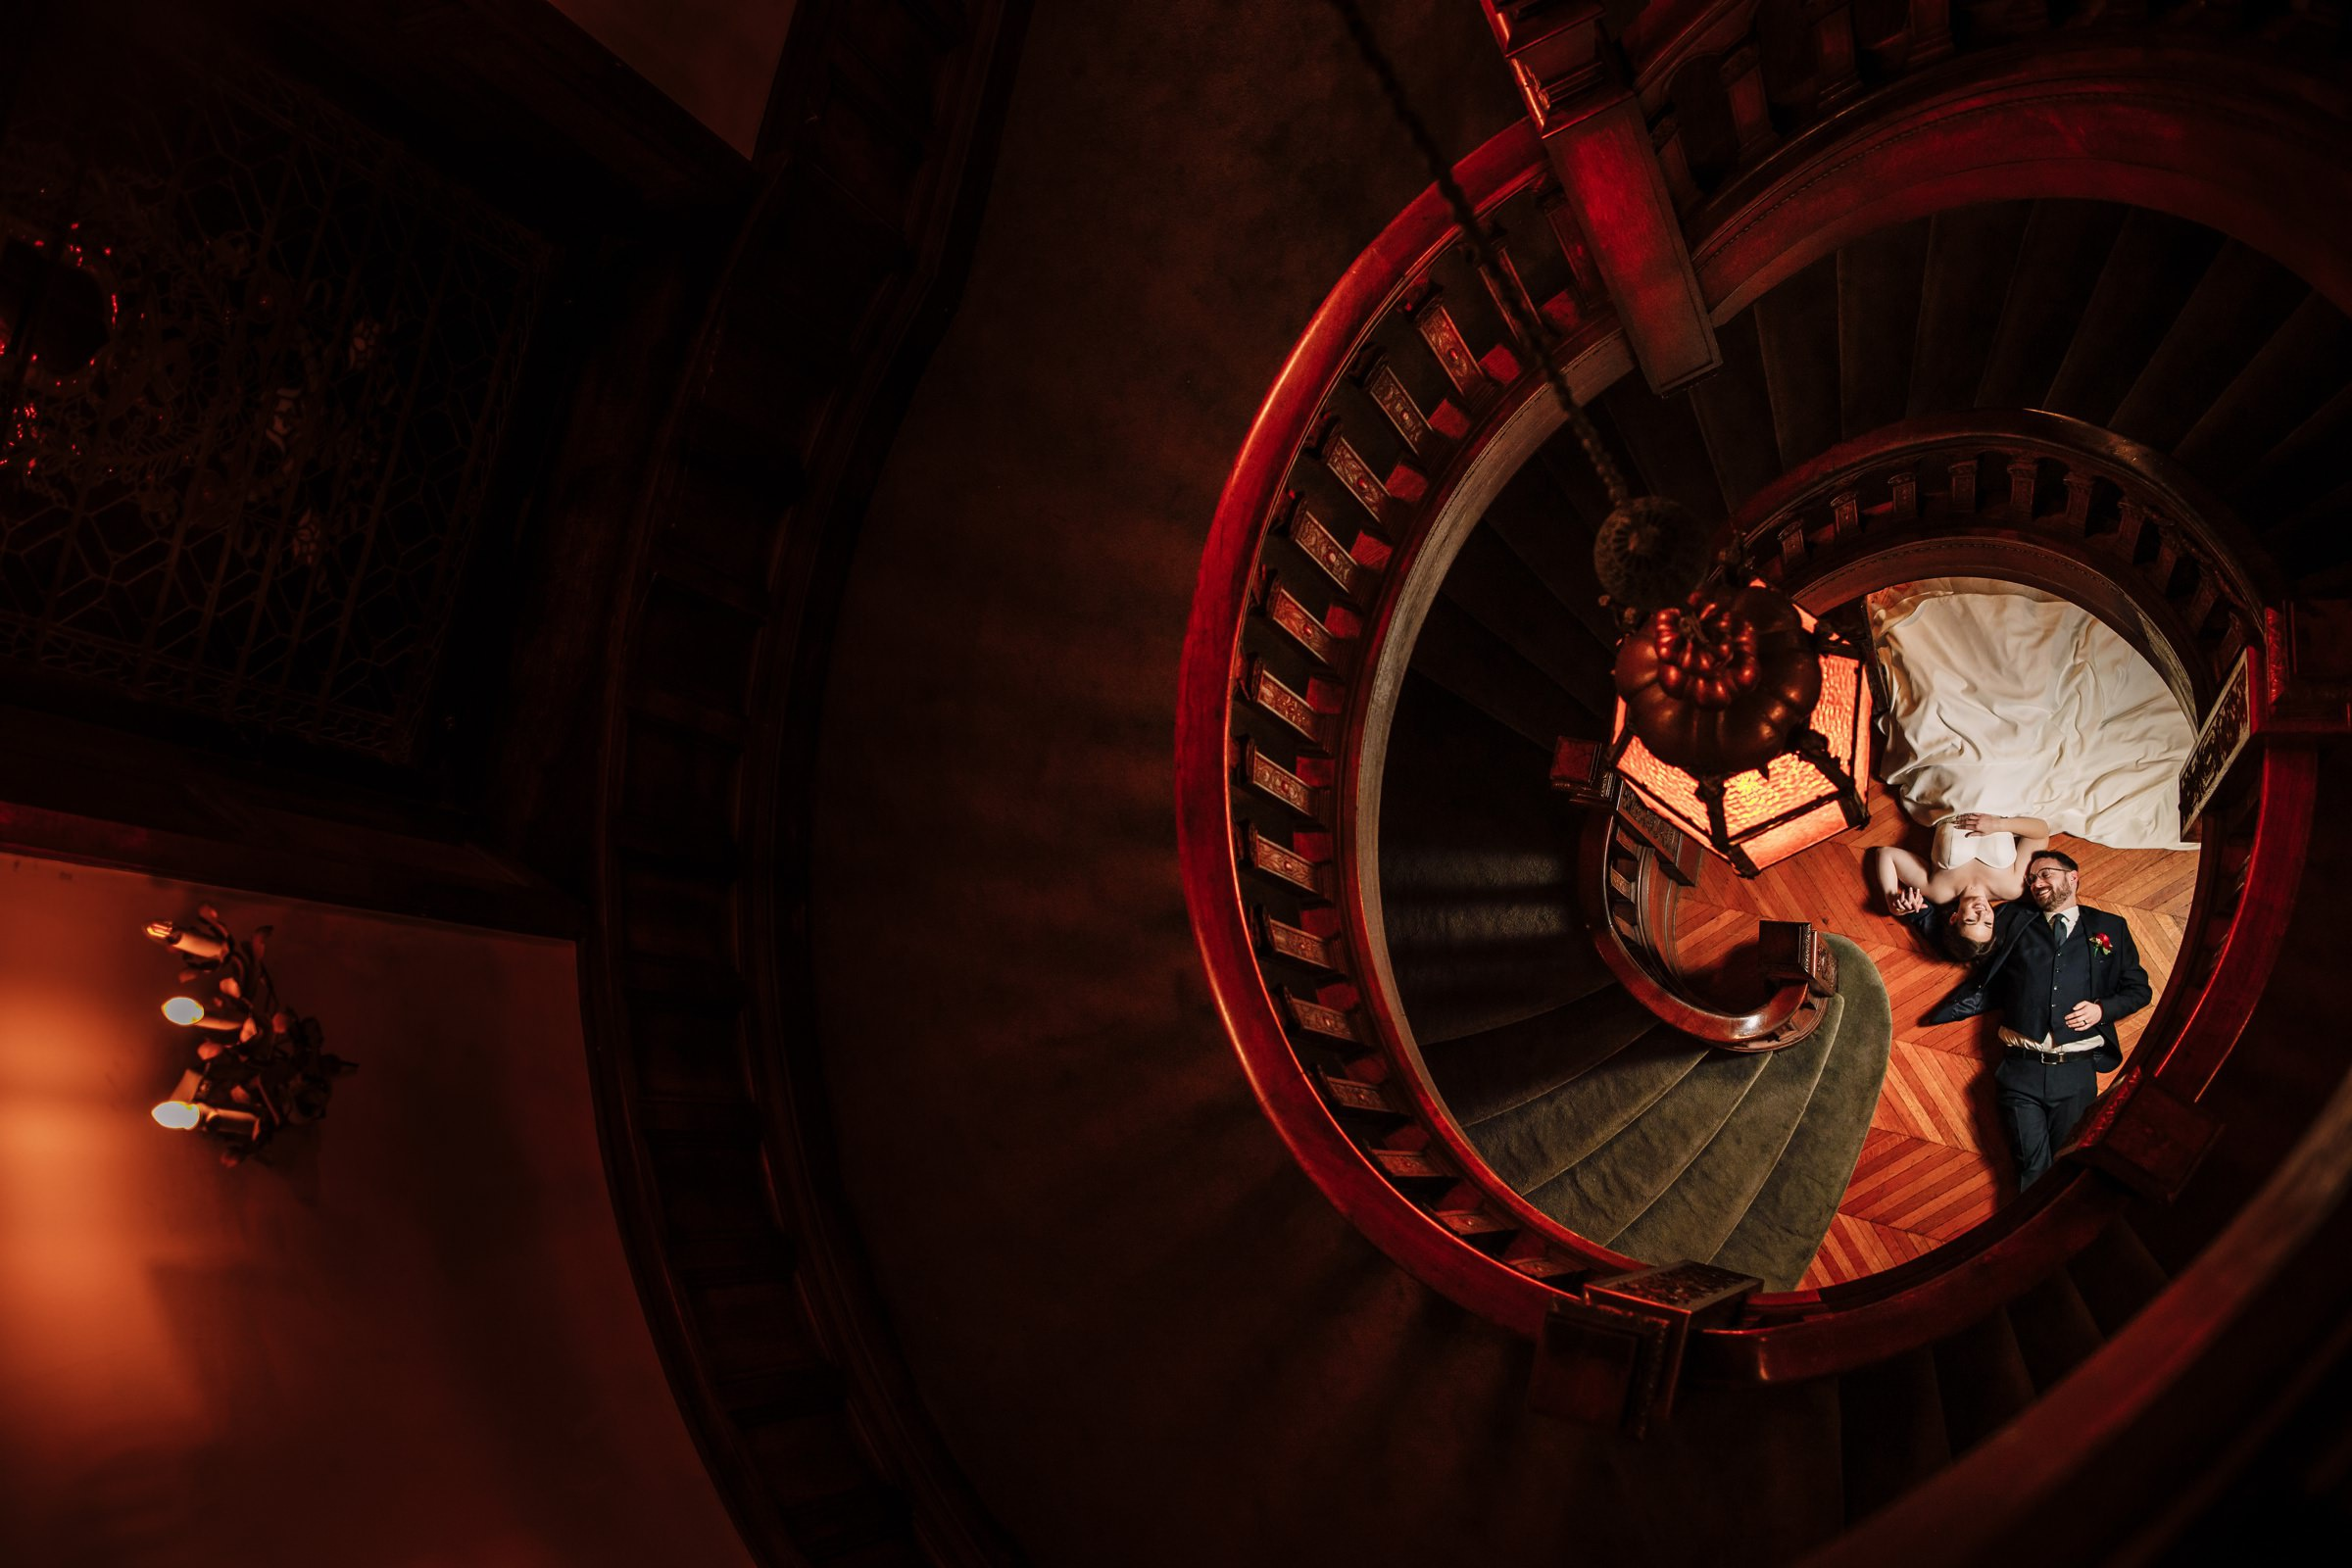 Bride and groom framed by spiral staircase - photo by Photography by Brea